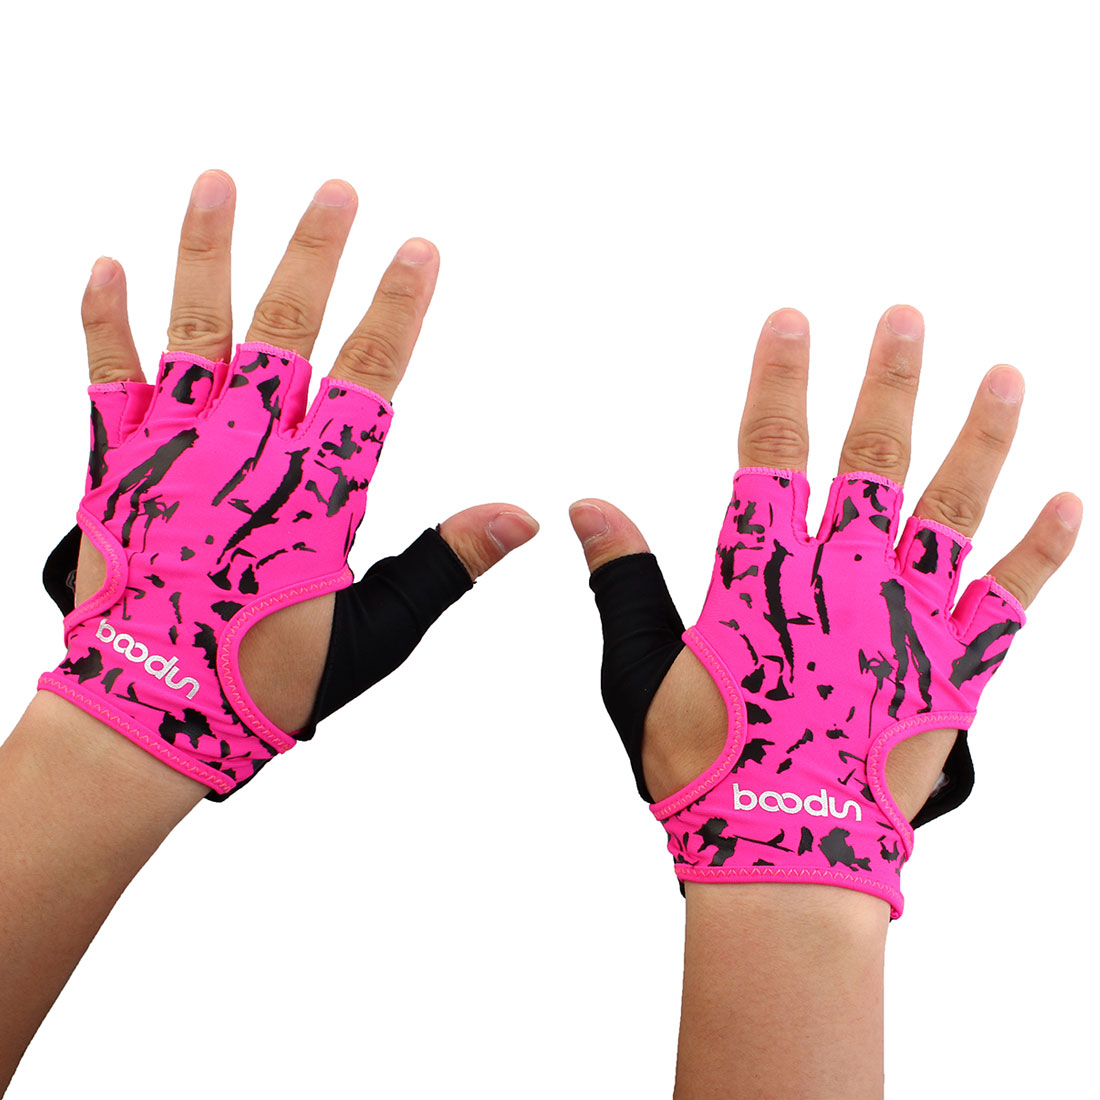 BOODUN Authorized Unisex Sports Training Workout Mittens Breathable Palm Support Fitness Gloves Fuchsia S Pair